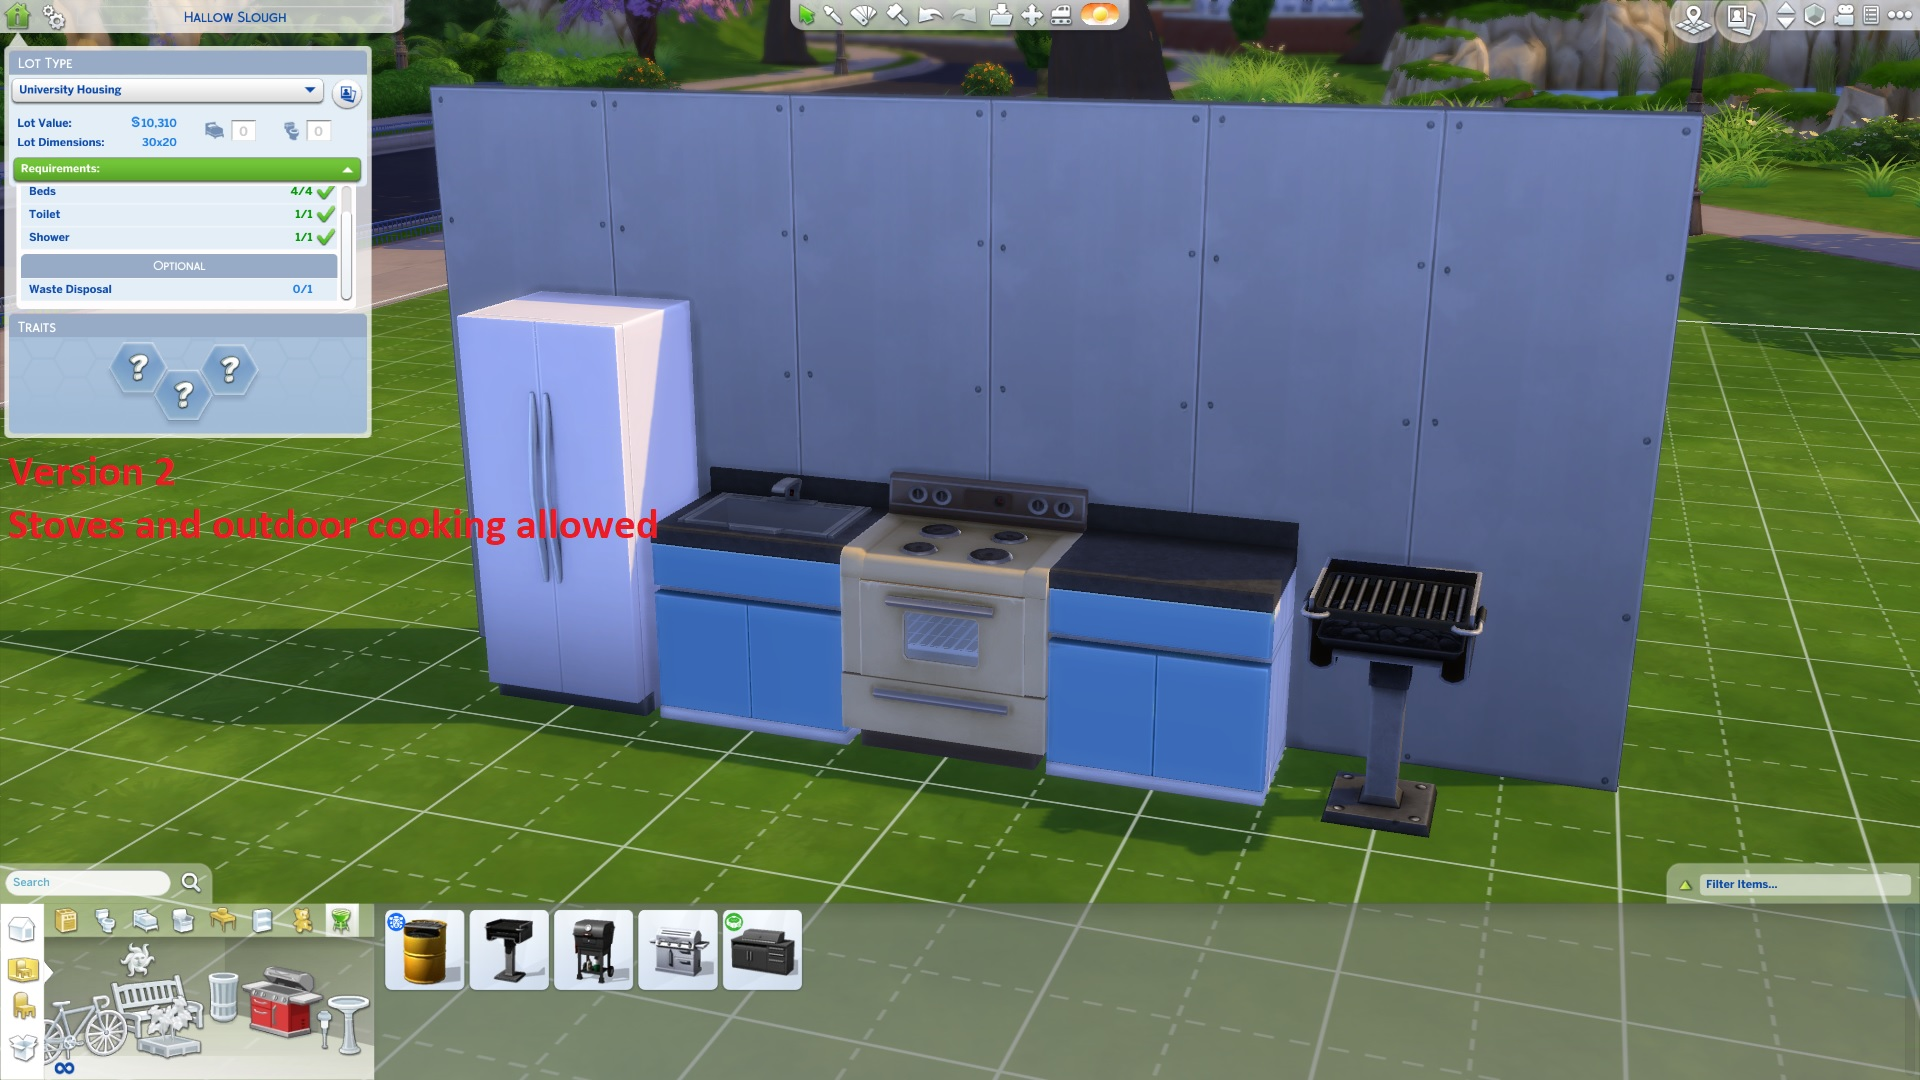 Mod The Sims Stoves and outdoor cooking allowed in dorms